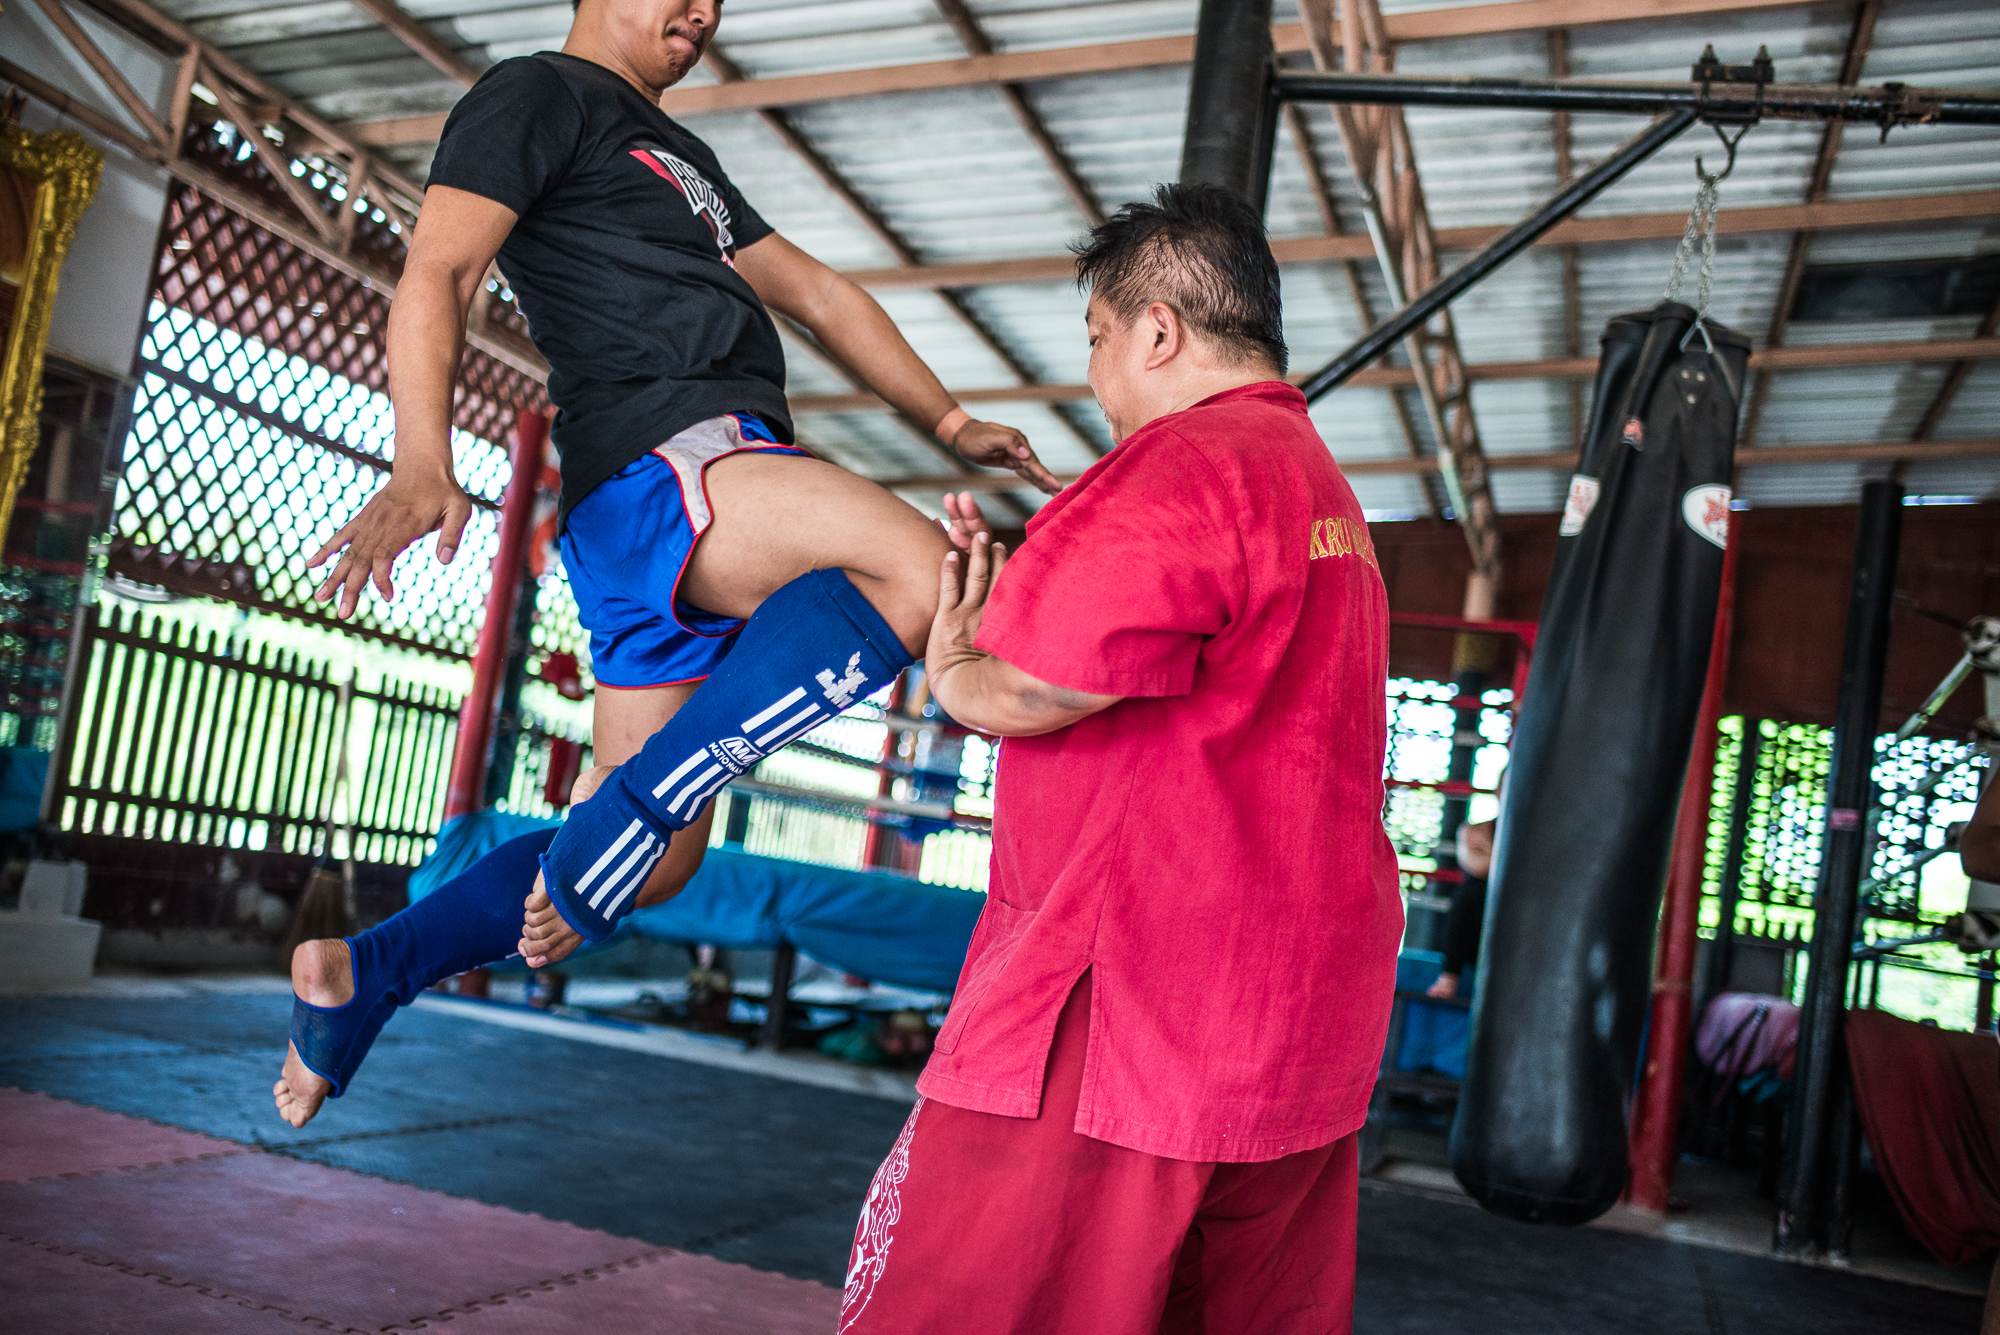 Luktupfah_Camp_Training-148.jpg